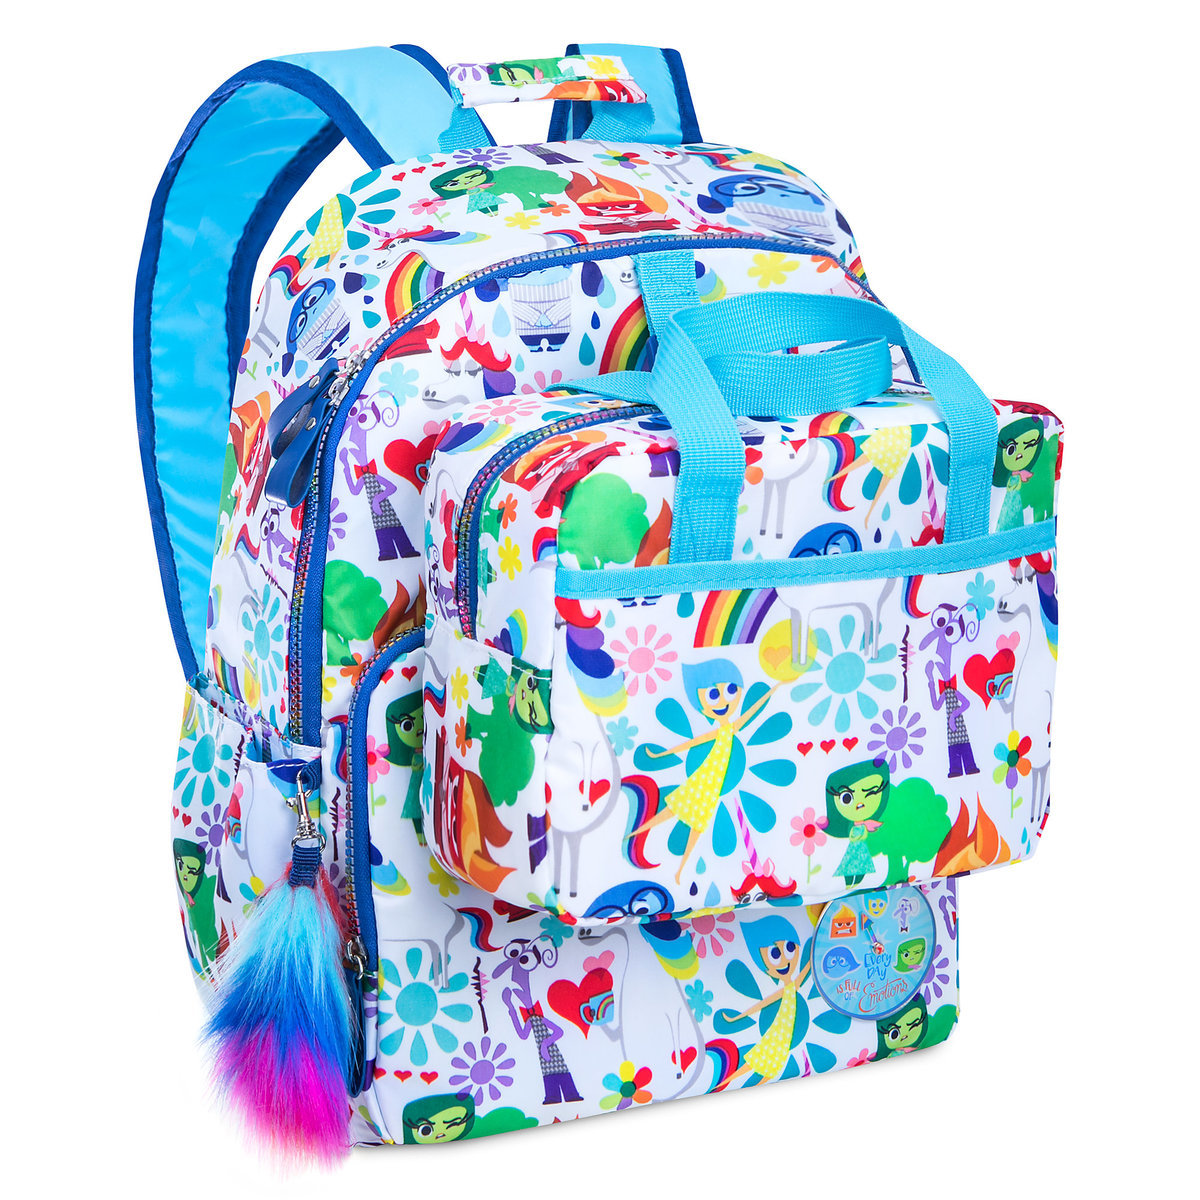 ab3a2a86664 Product Image of Inside Out Backpack - Personalizable   2